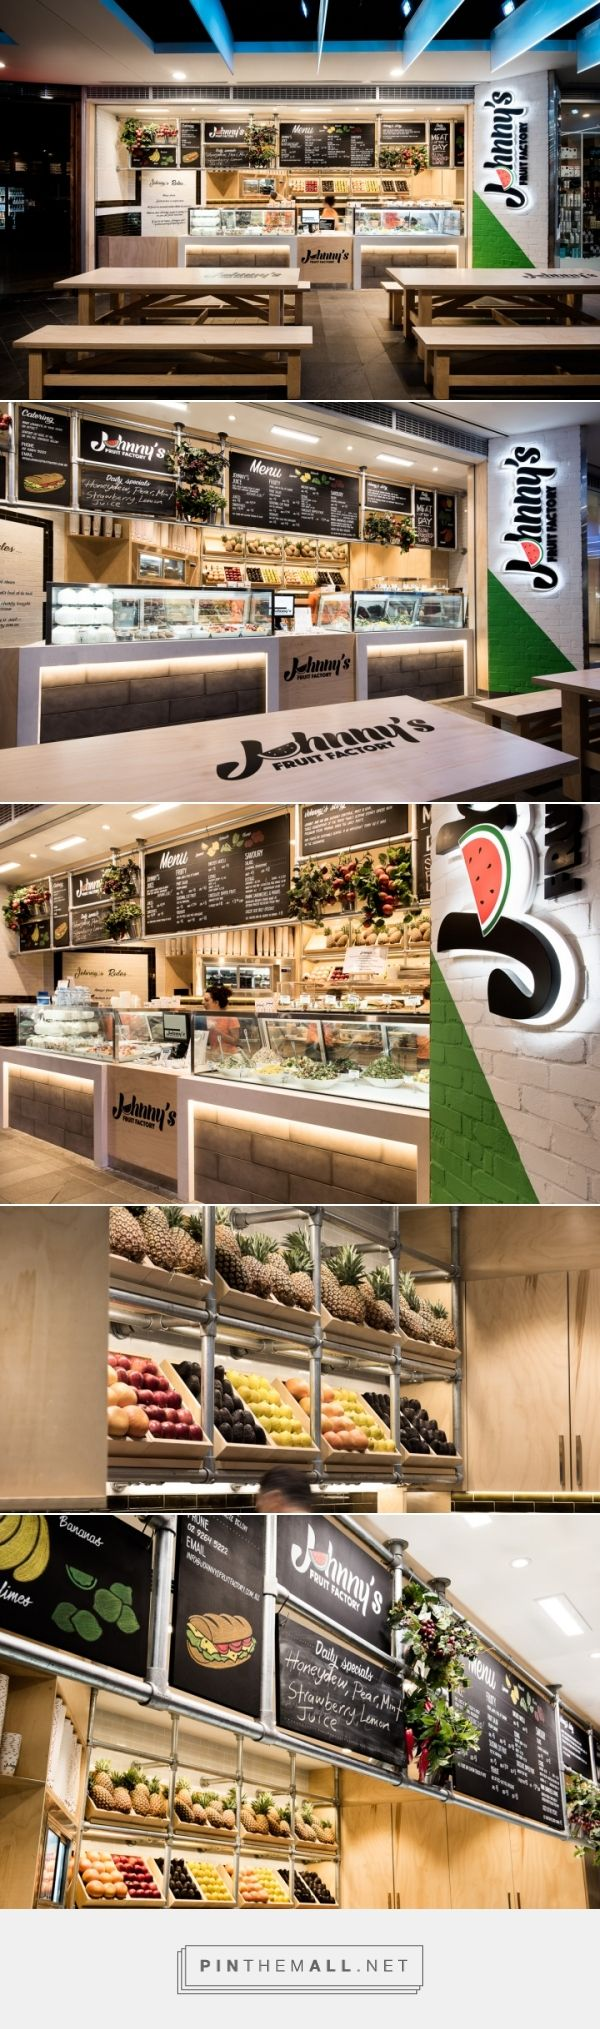 Johnny's+Fruit+Factory+by+Mima+Design,+Sydney+–+Australia+»++Retail+Design+Blog+-+created+via+https://pinthemall.net